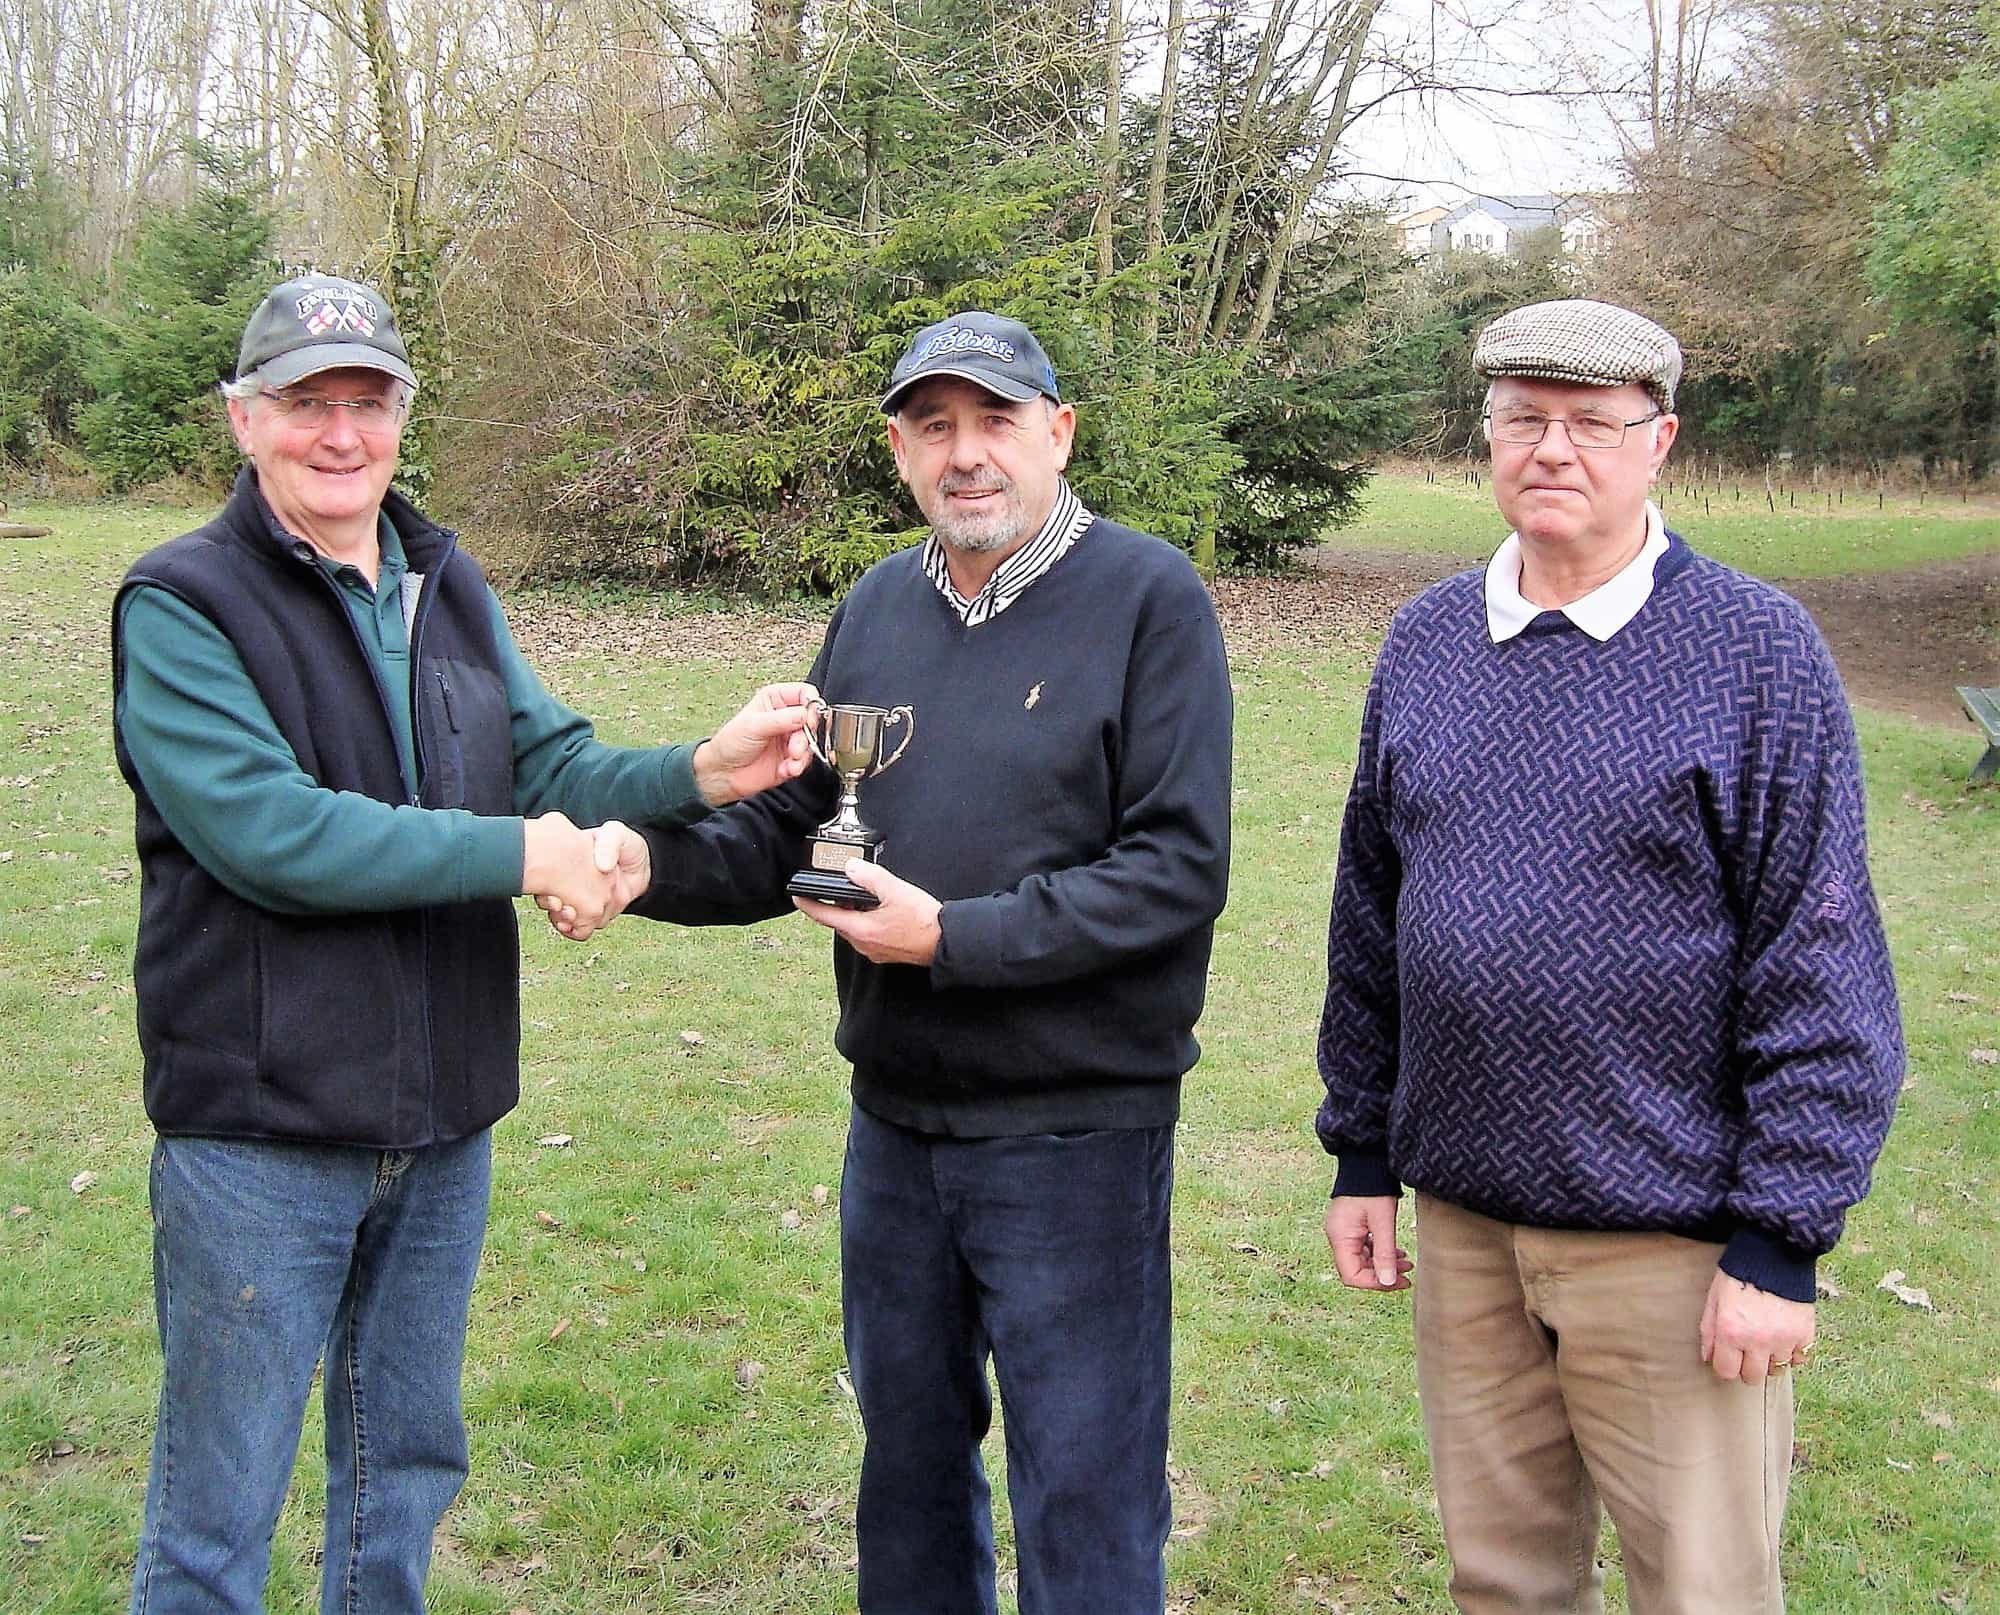 Last year's winner, Peter Barclay (left), presents Richard Poyser (centre)with the cup in the presence of the sponsor Brian White (right).